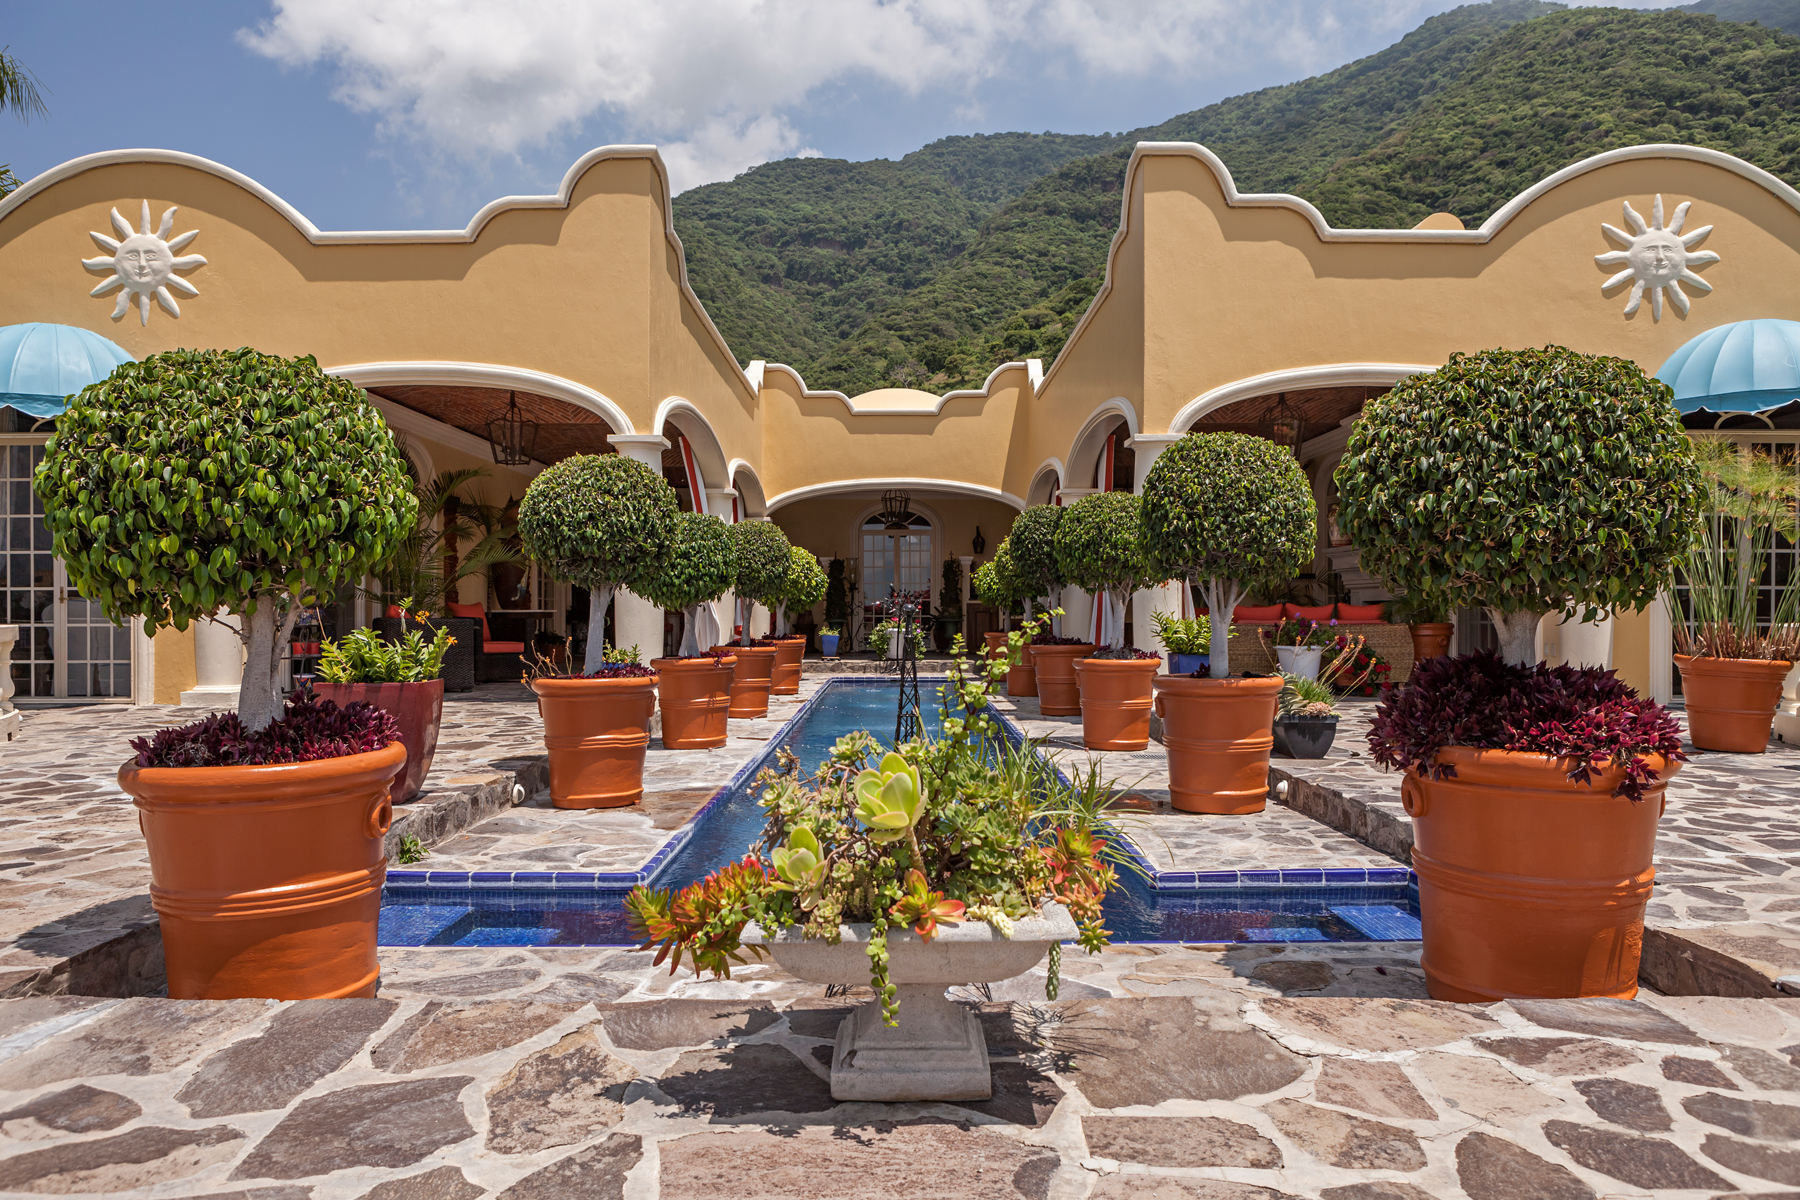 Single Family Home for Sale at Casa Limon Rinconada del Limon 1 Fraccionamiento El Limon Ajijic, 45920 Mexico